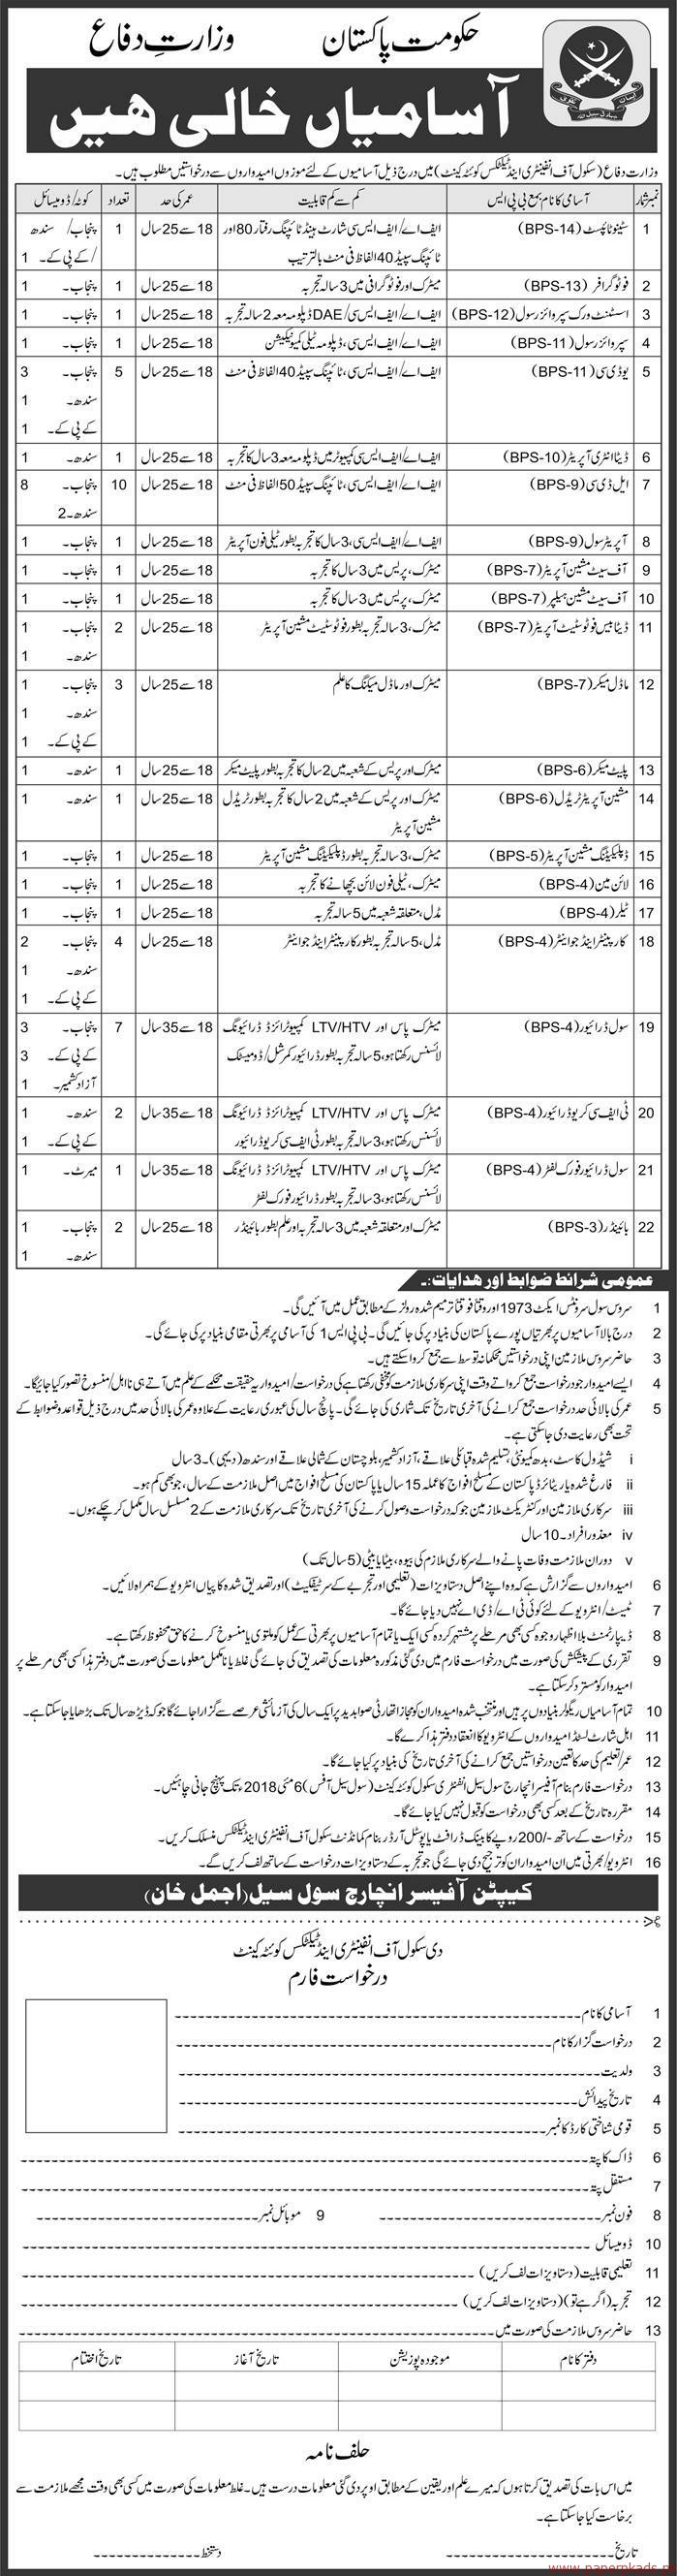 Government of Pakistan - Ministry of Defence Jobs 2018 Latest